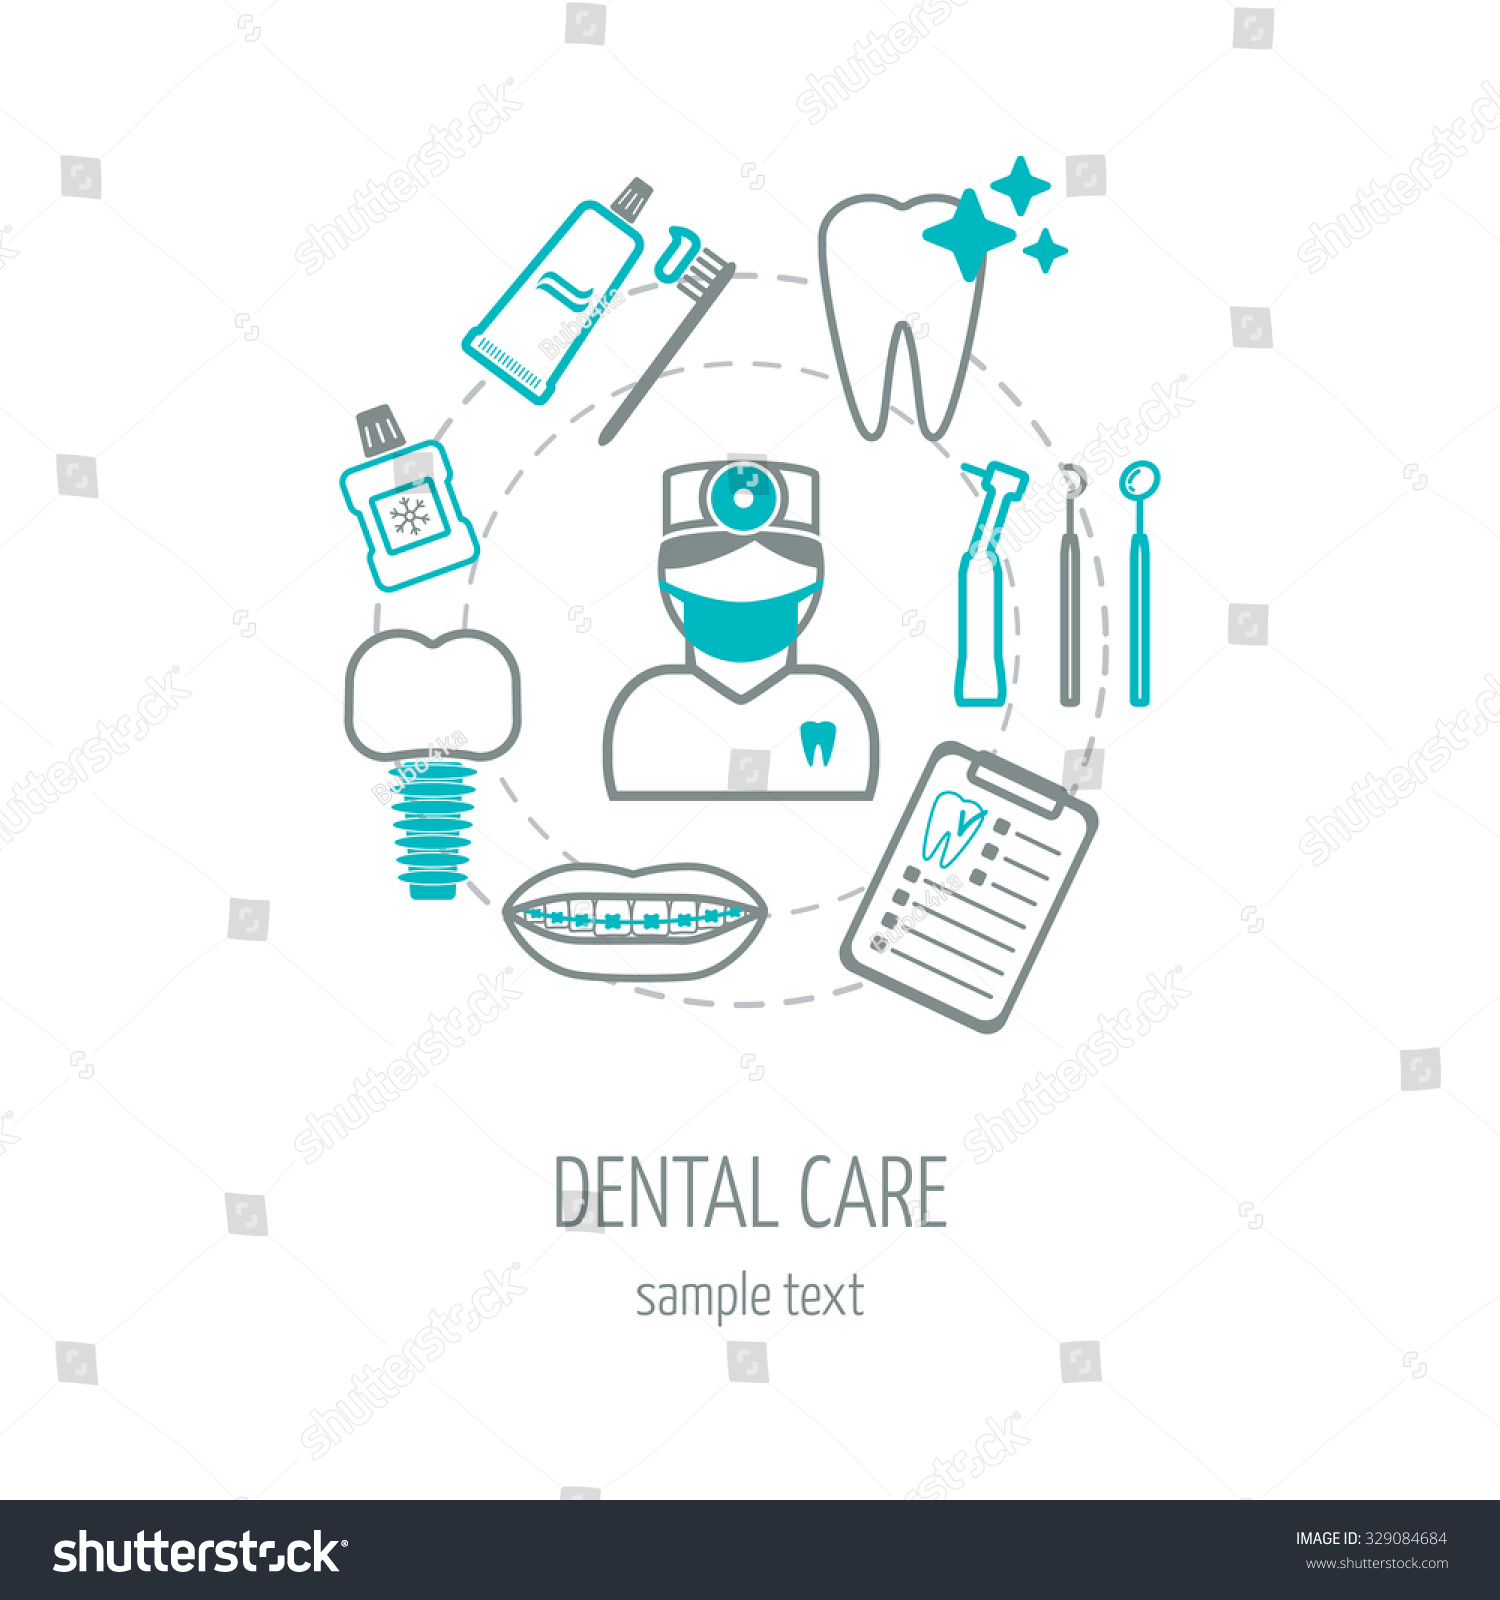 stock-vector-dental-clinic-banner-background-poster-concept-dental-care-flat-design-vector-illustration-329084684.jpg